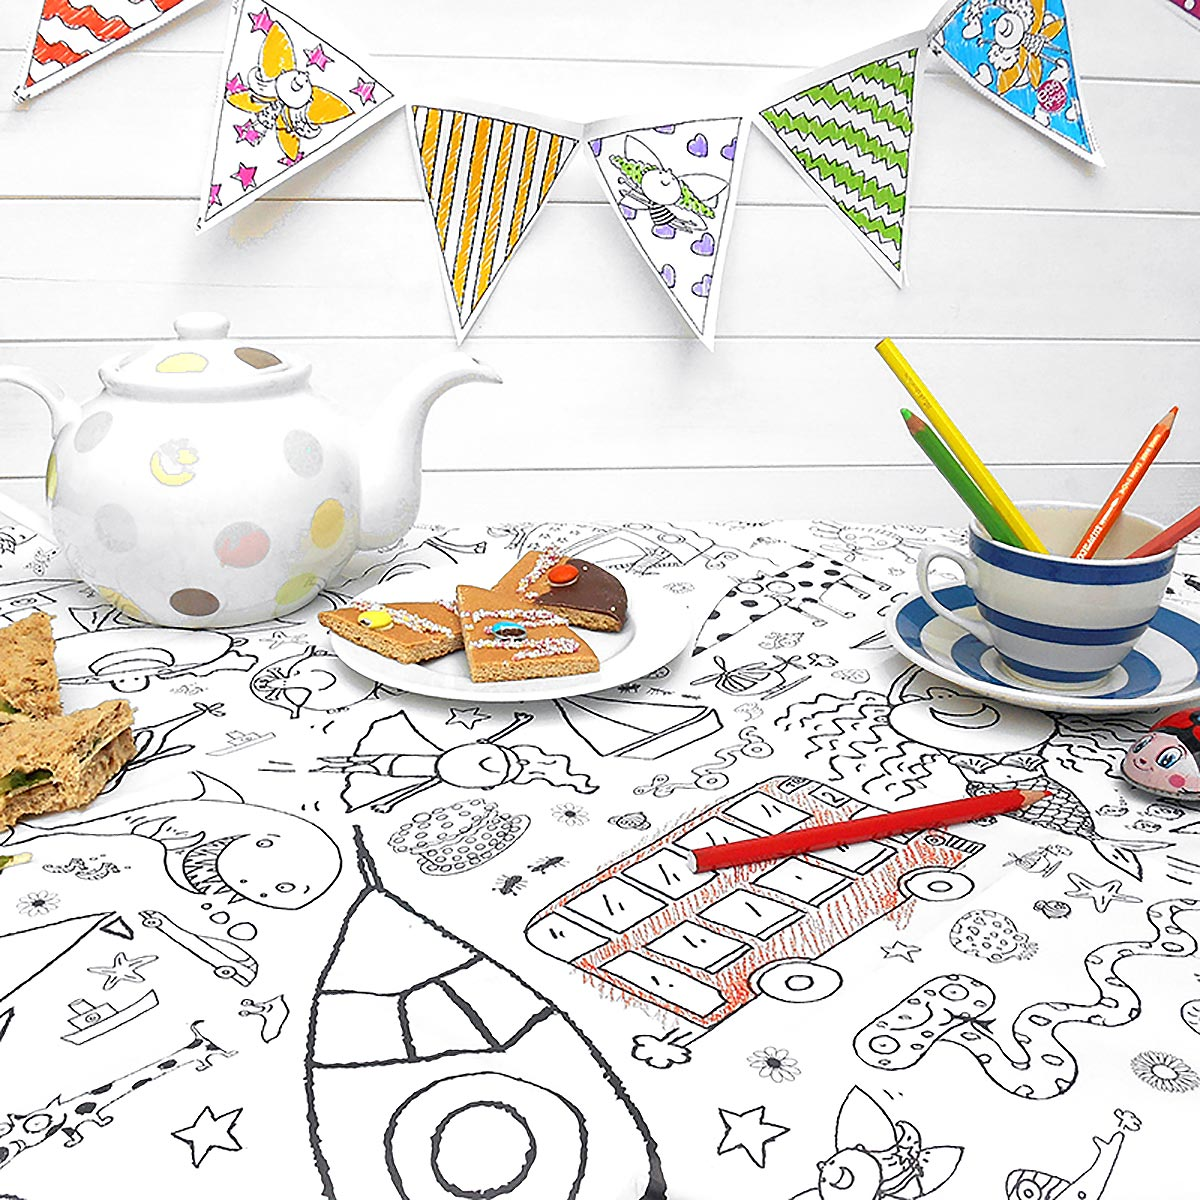 colour-in tablecloth with bunting and colouring pencils